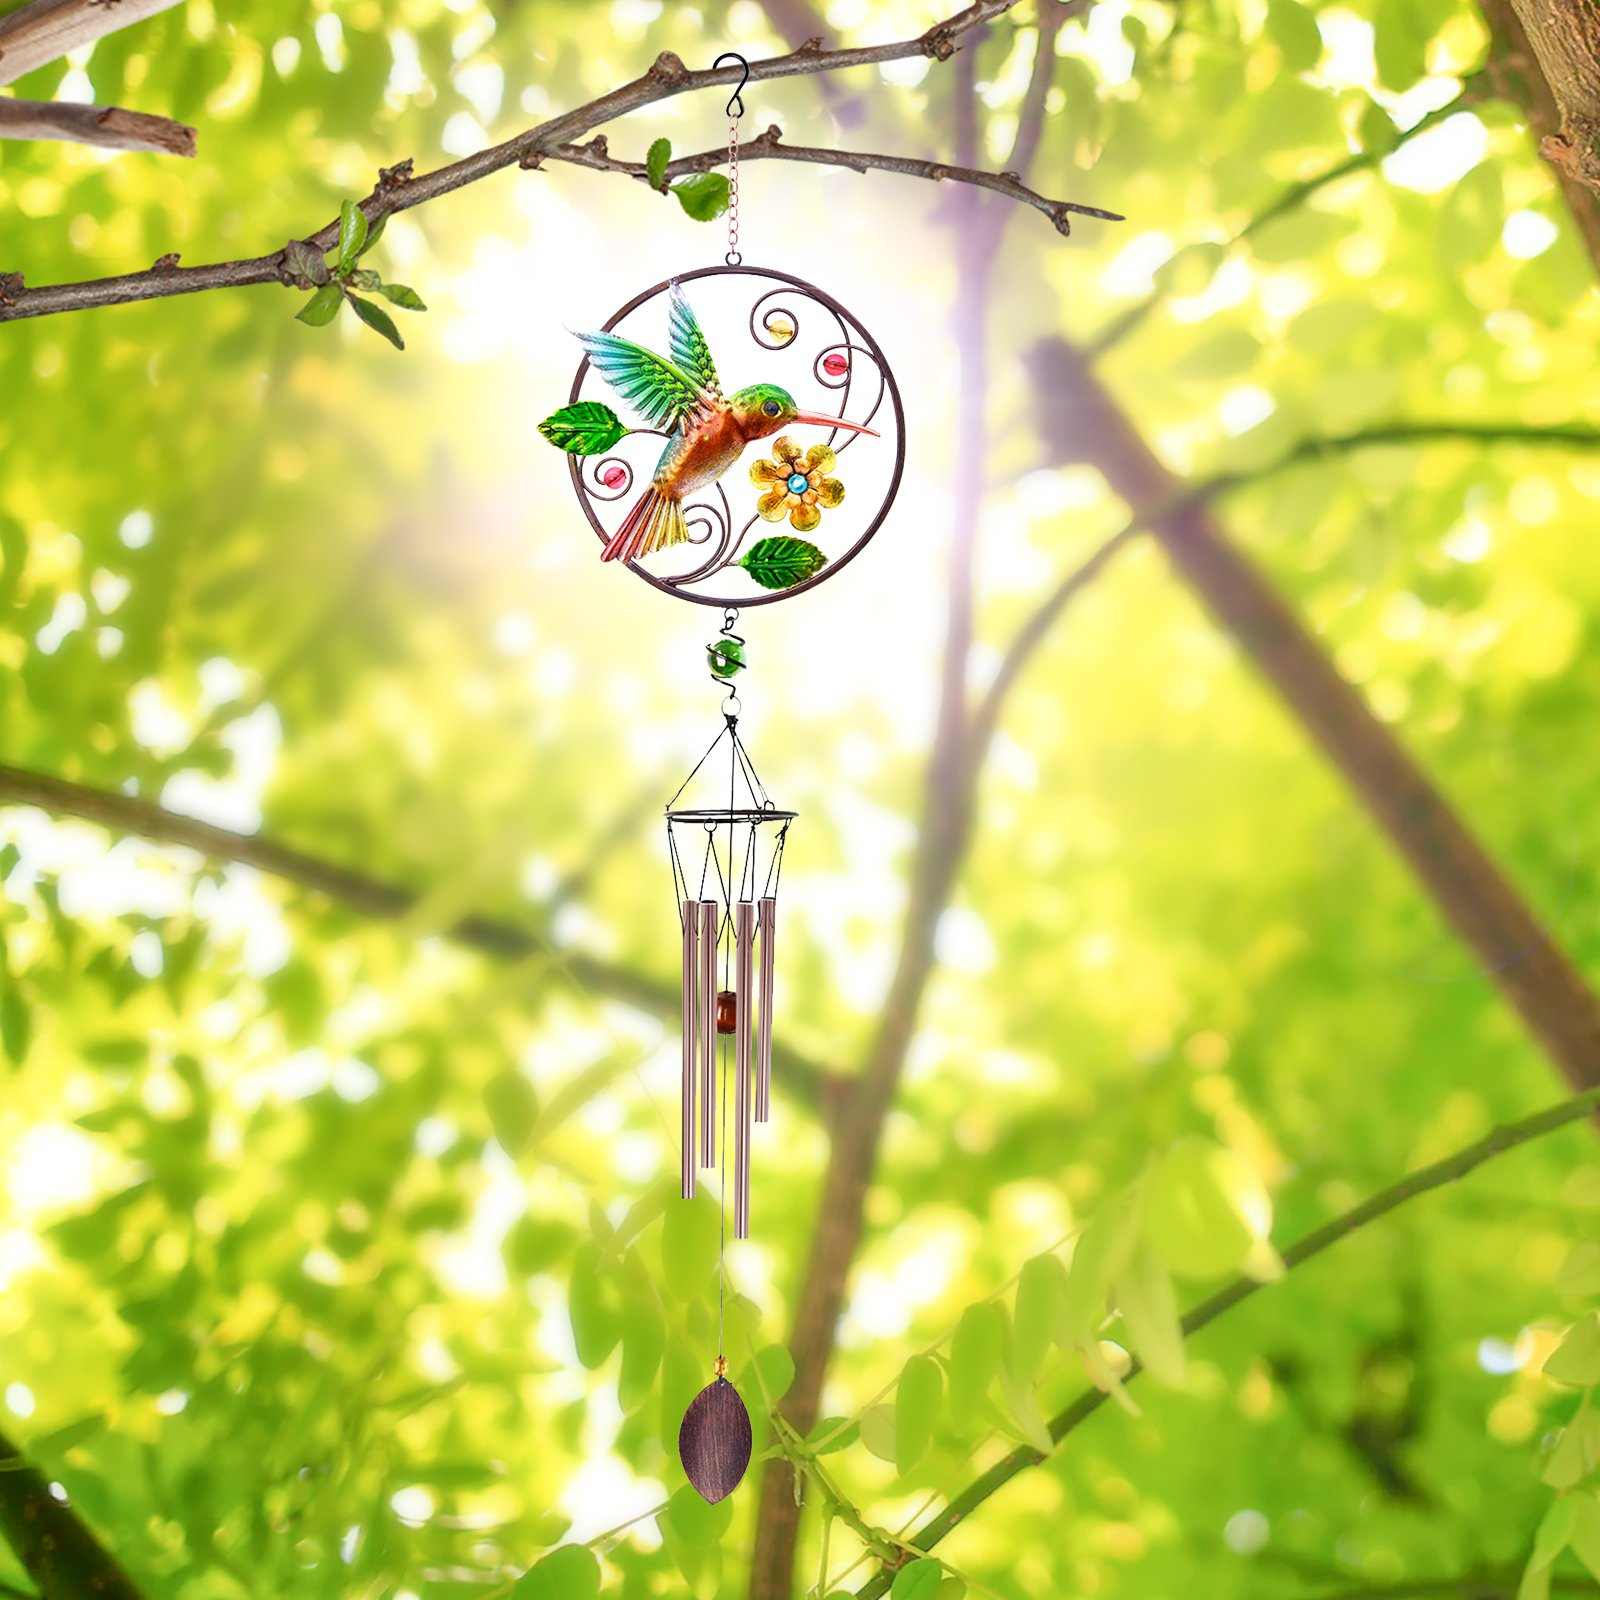 CREATIVE DESIGN Wind Chimes, 32\'\'H Hummingbird Wind Chimes, Portable Metal Garden Wind Chimes for Home Garden Decoration